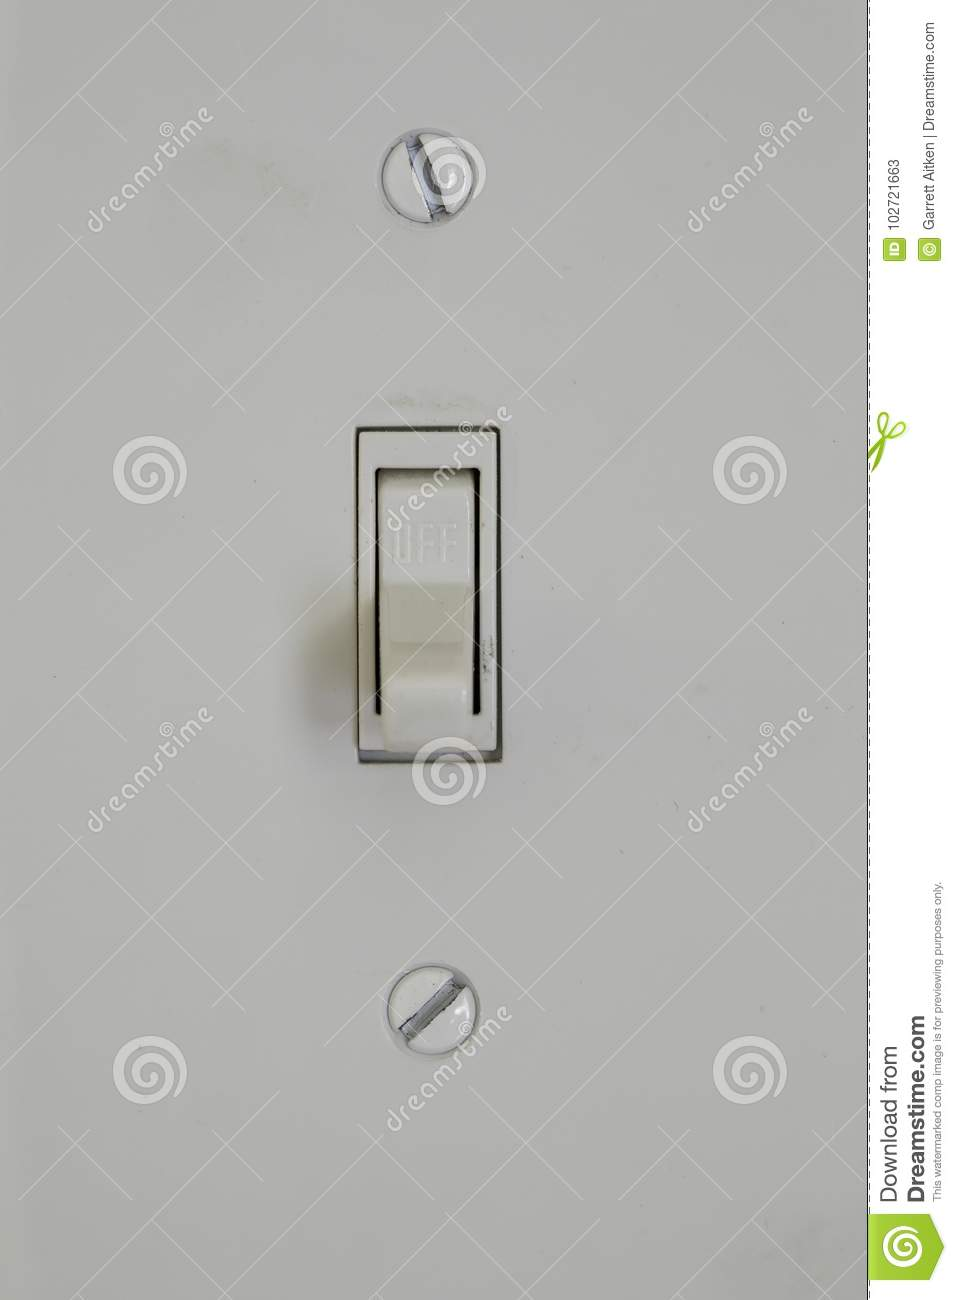 Light Switch stock image. Image of power, objects, copy - 102721663